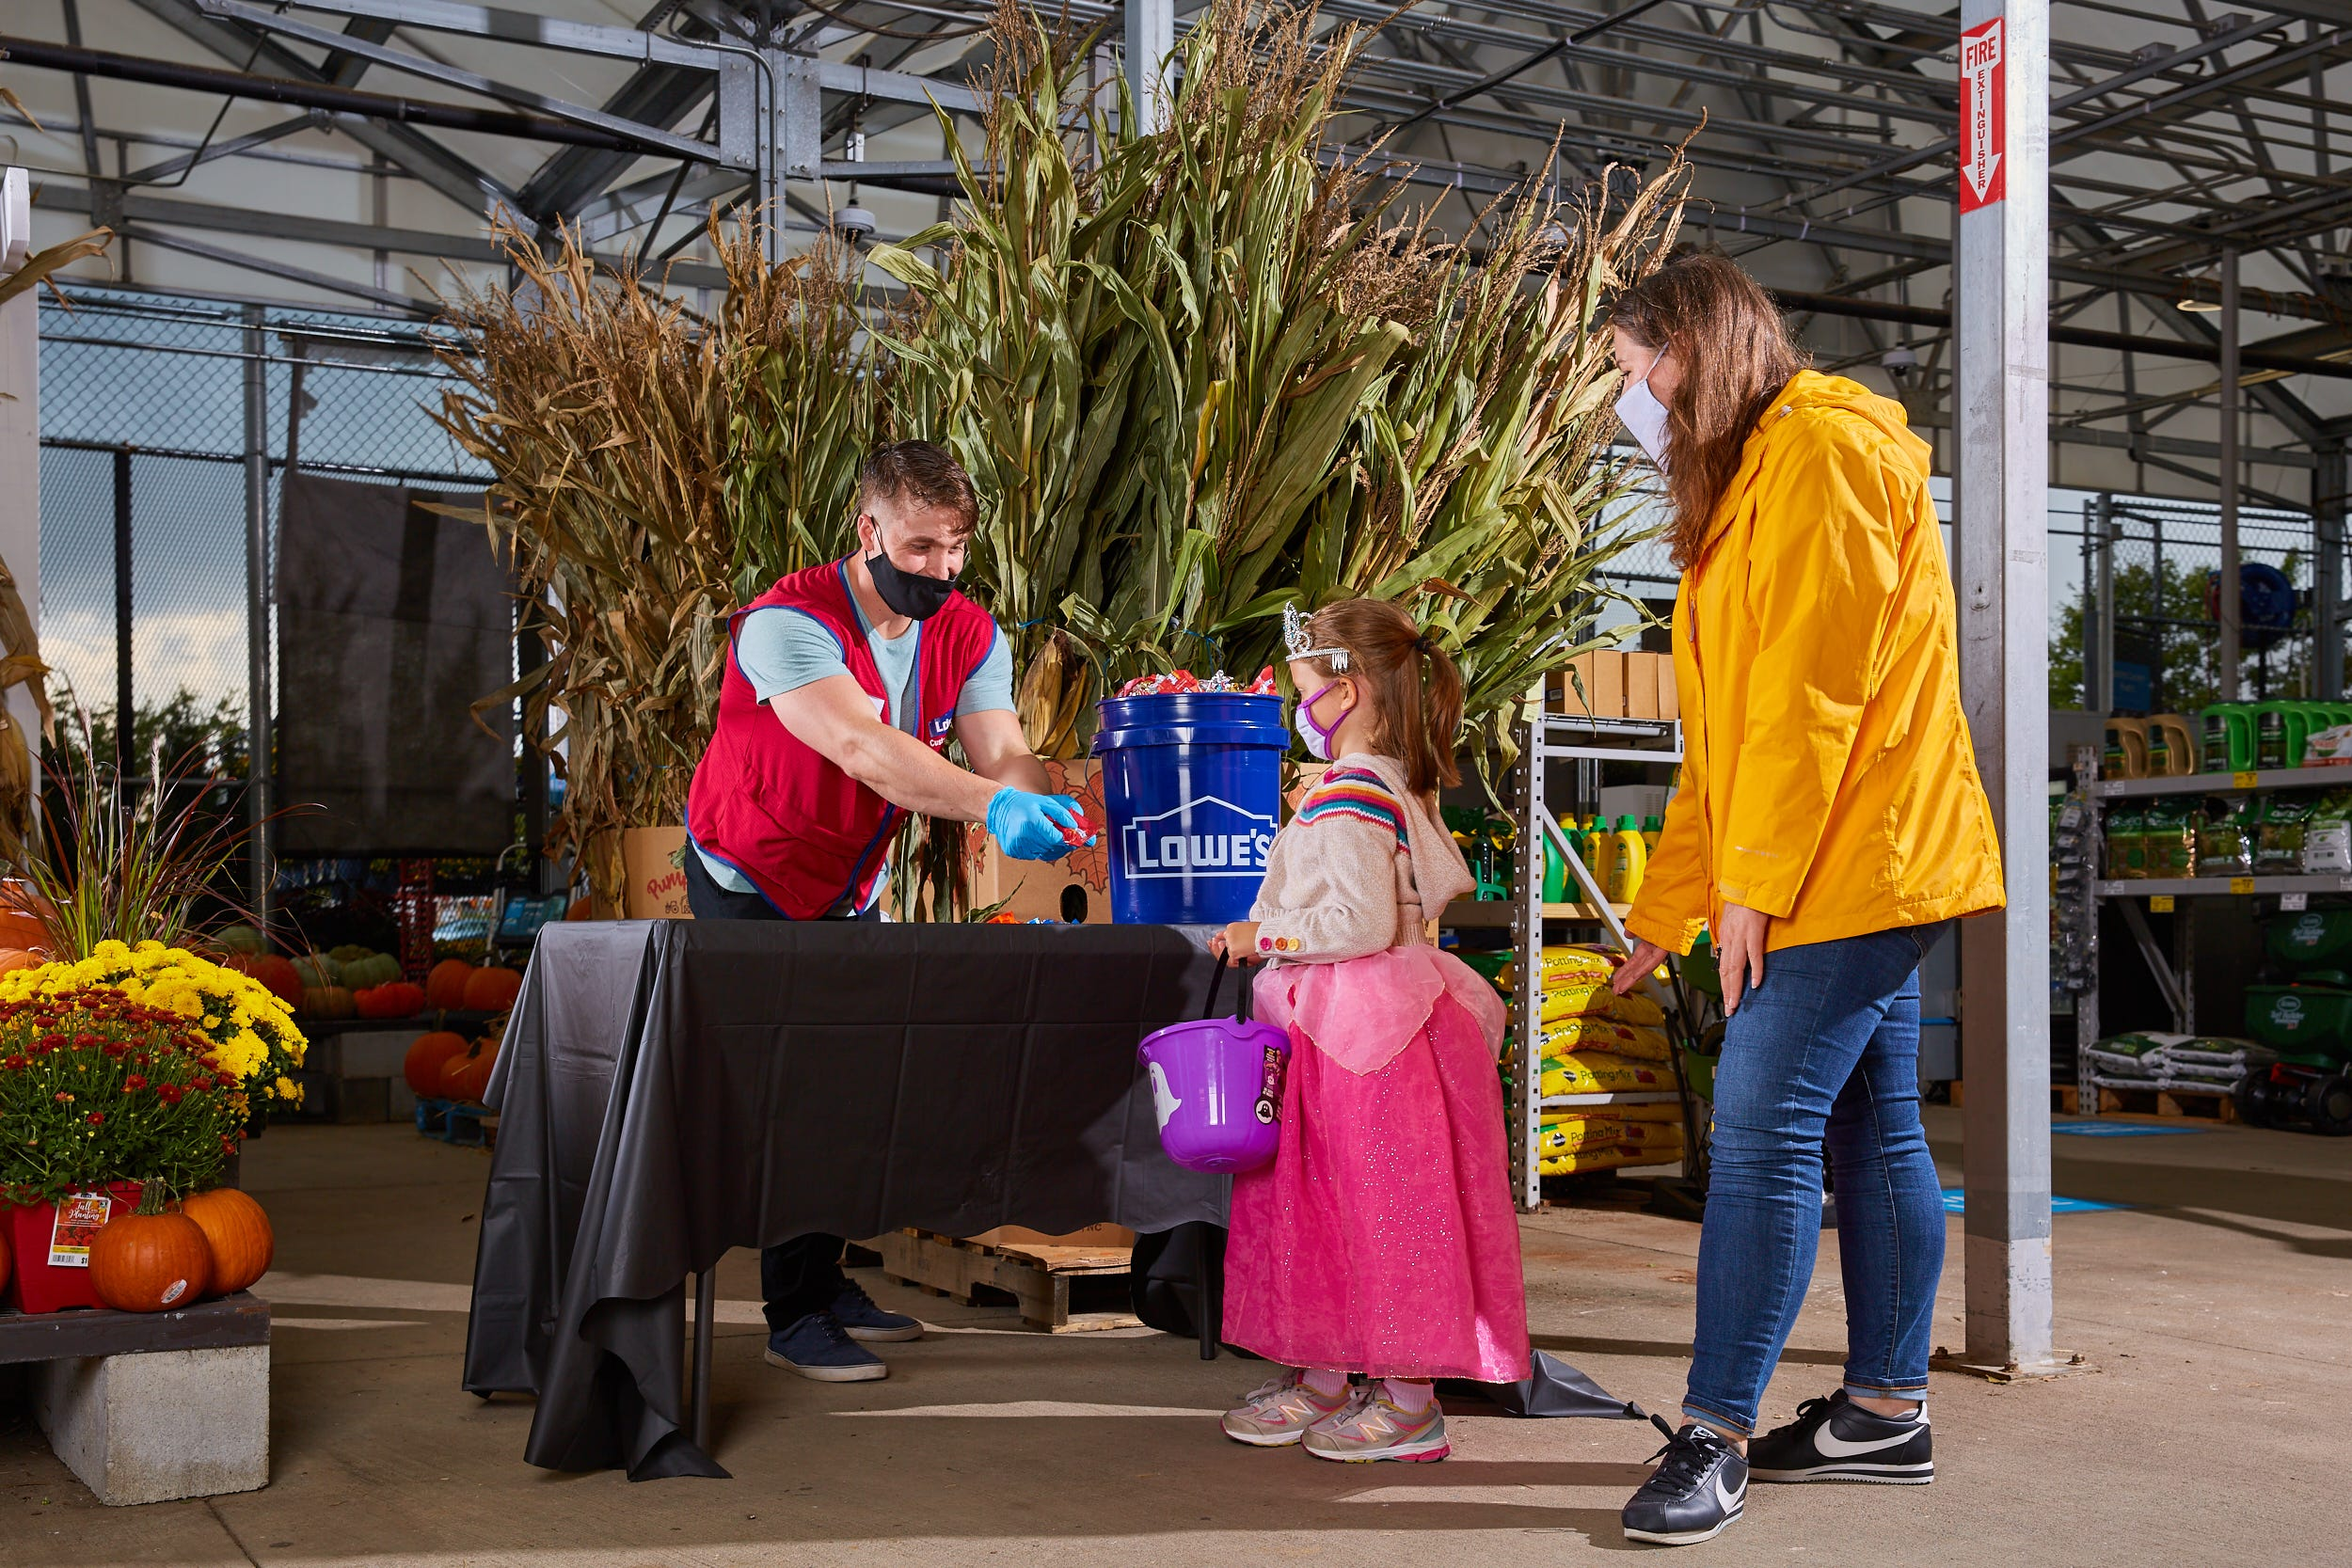 Lowe's to host trick-or-treating at stores nationwide before Halloween. Here's how to register.